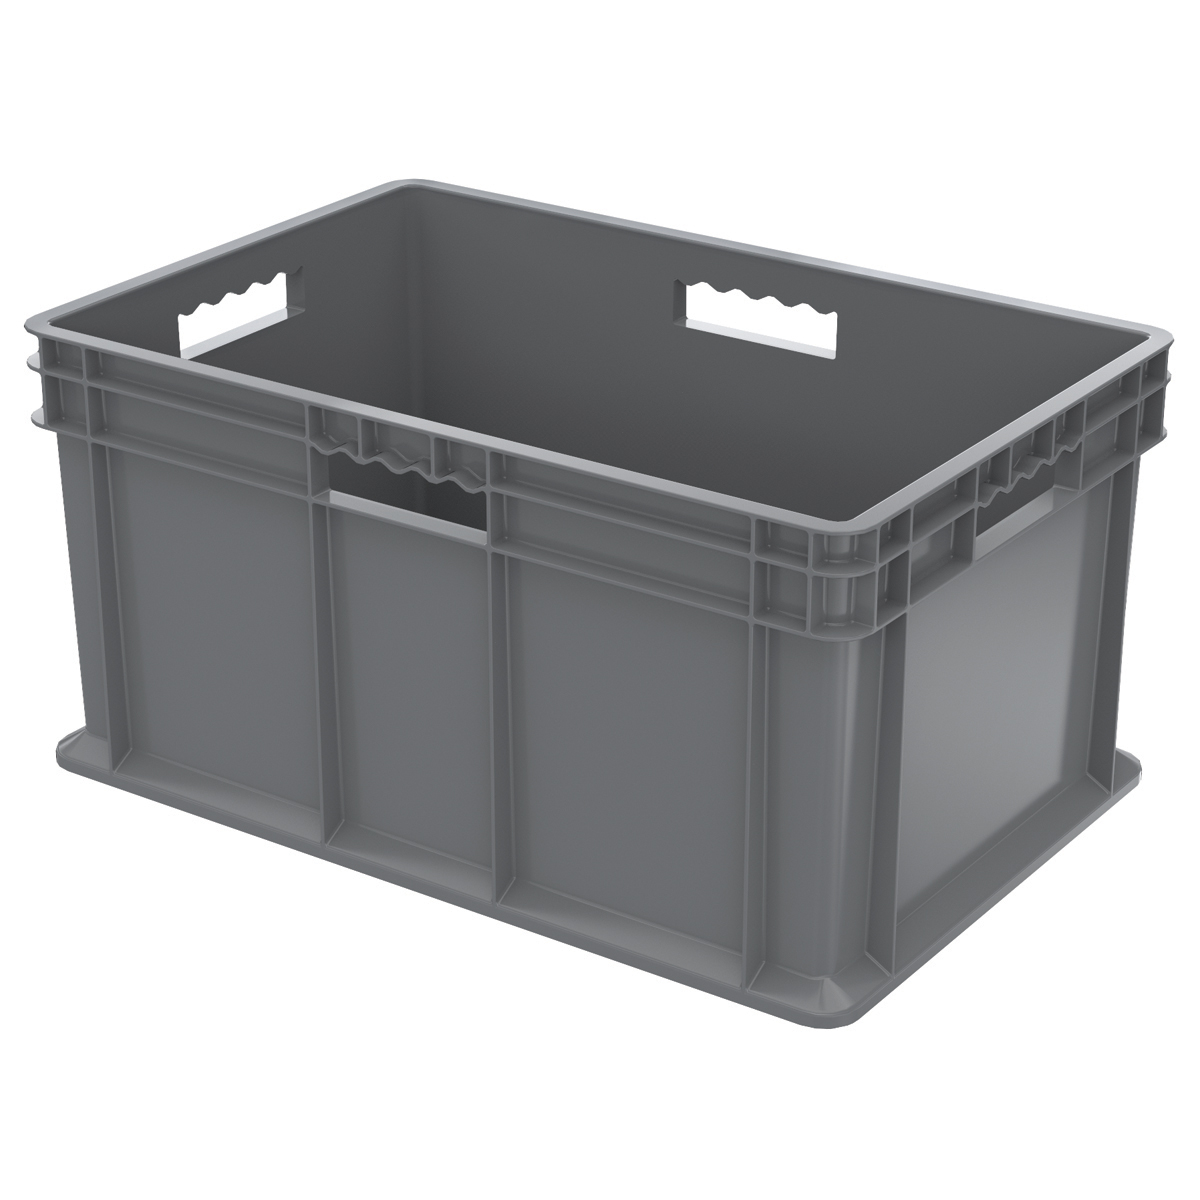 Straight Wall Container, Solid 23-3/4 x 15-3/4 x 12-1/4, Gray (37682GREY).  This item sold in carton quantities of 3.